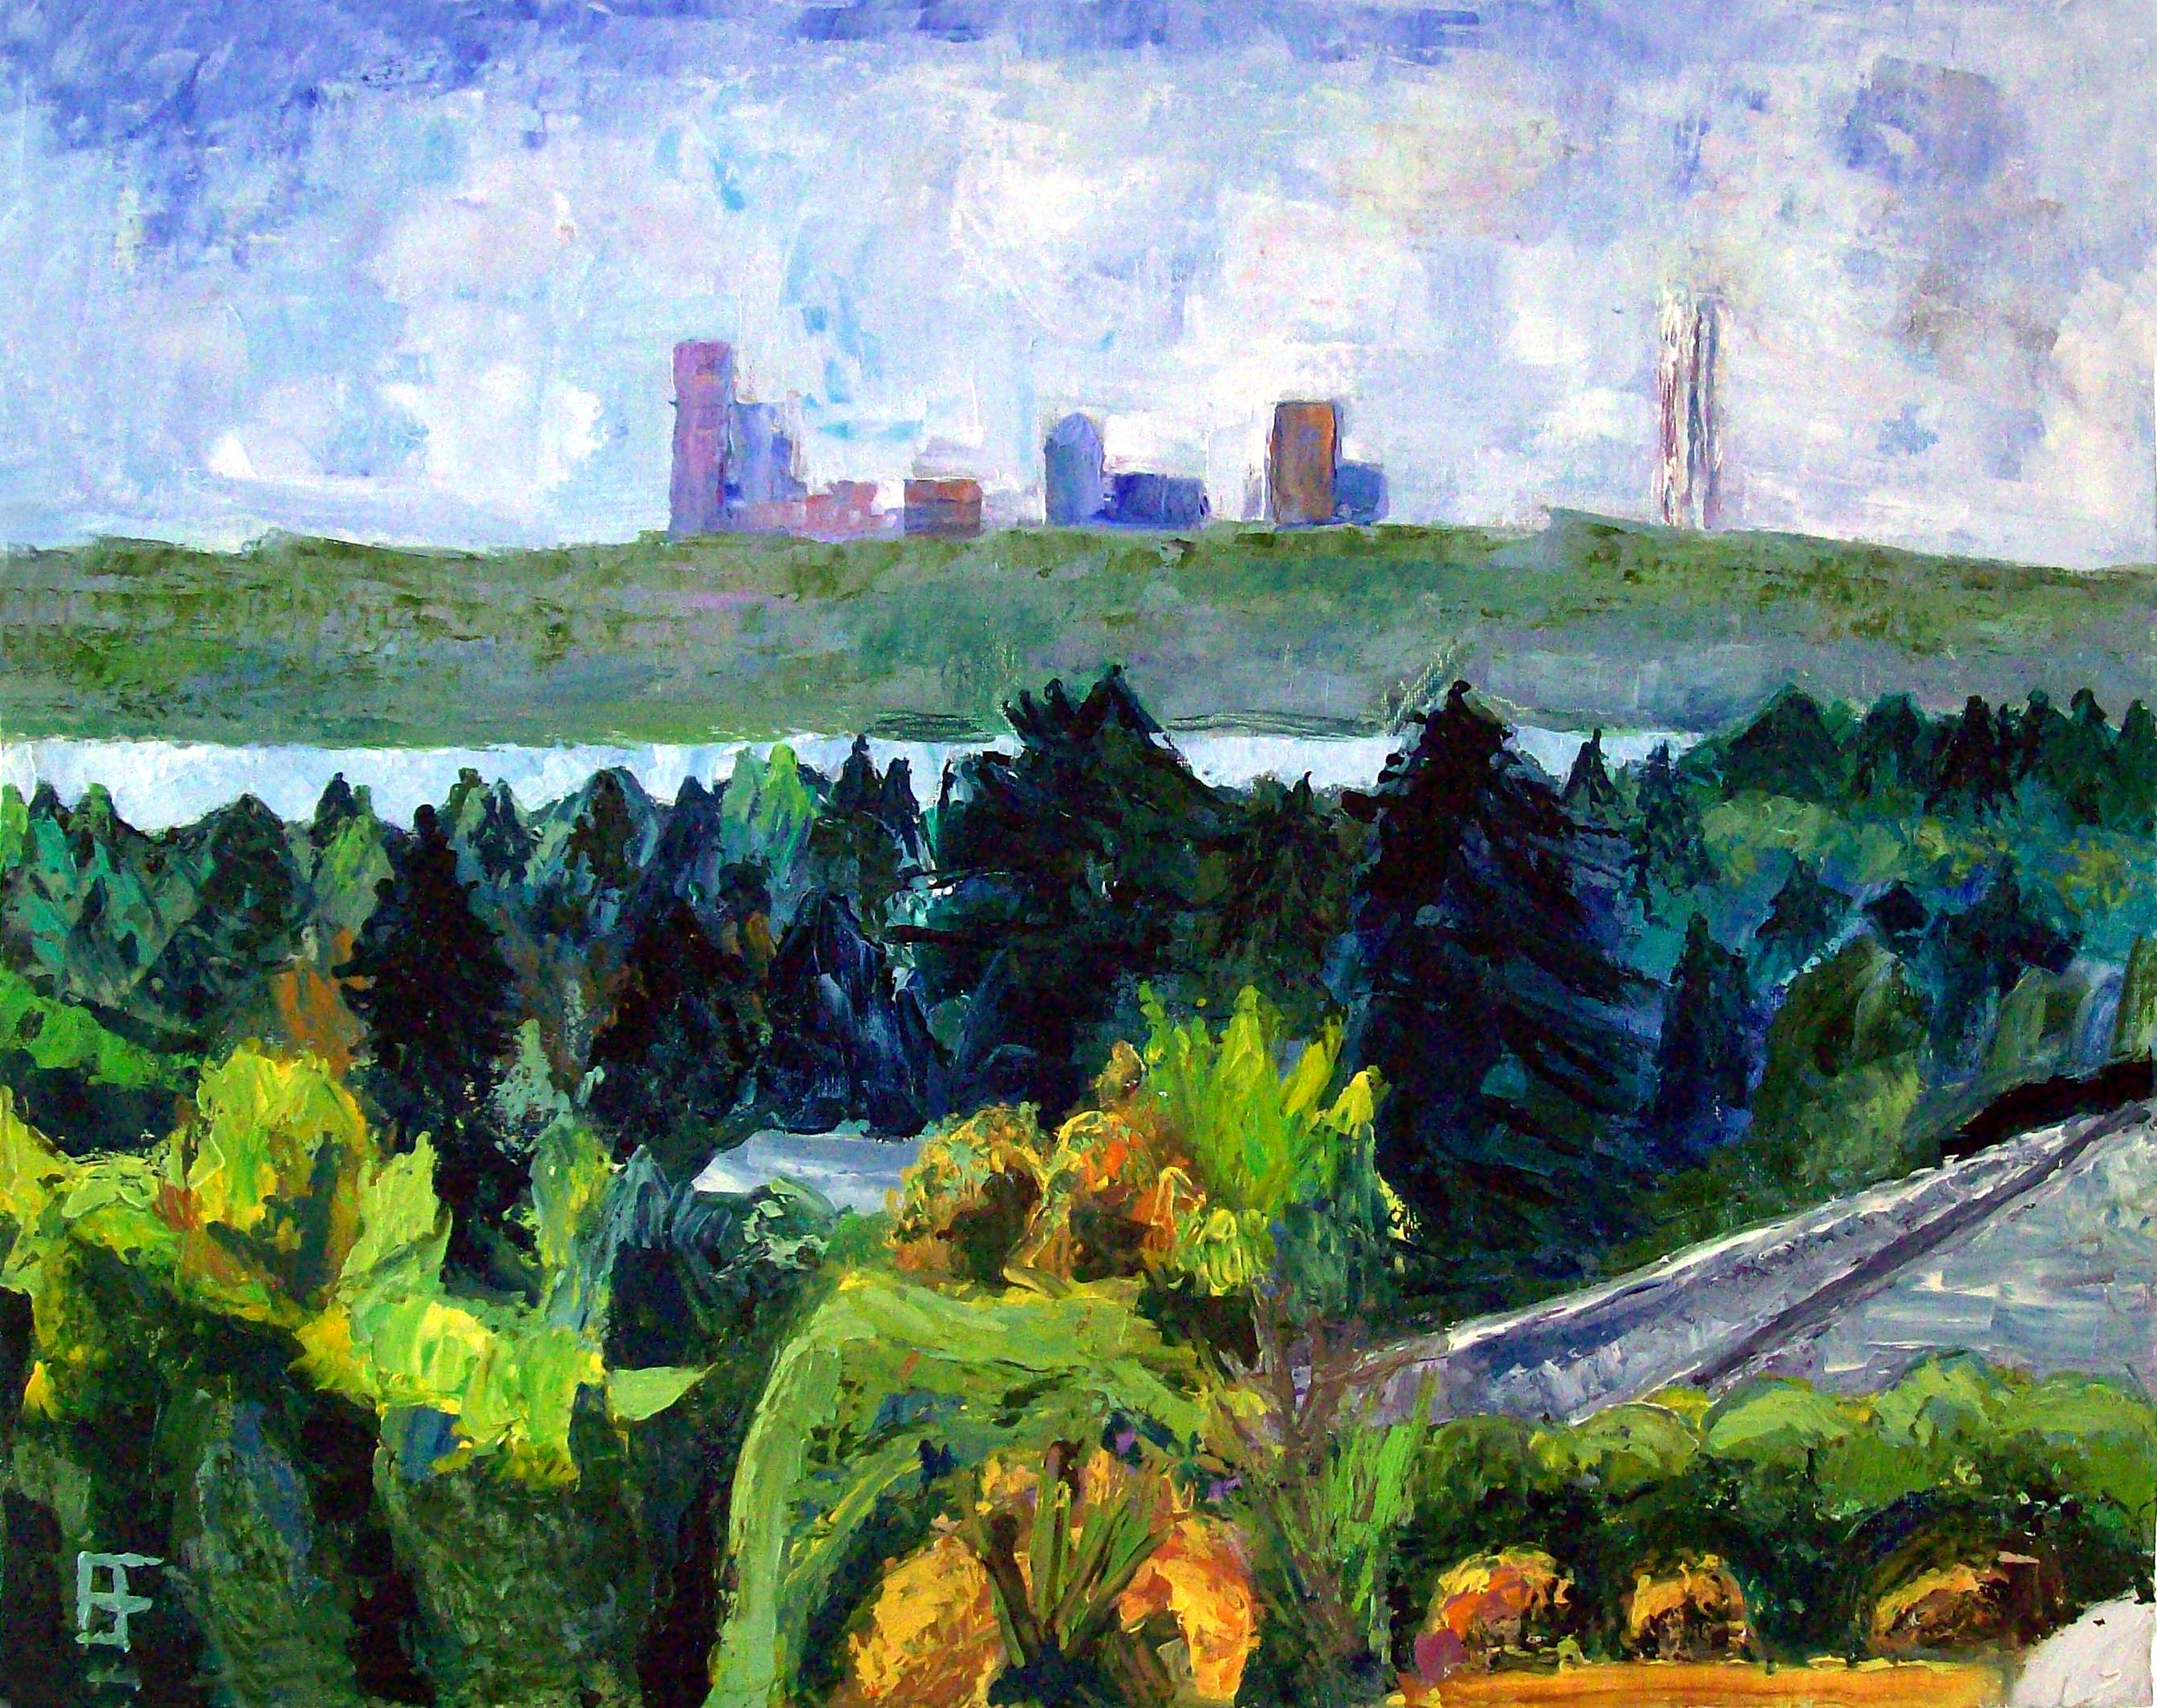 """""""Hilltop Road View of Seattle"""" by Allen Forrest, 16""""x20"""" Oil on Canvas Panel, Mud Season Review"""